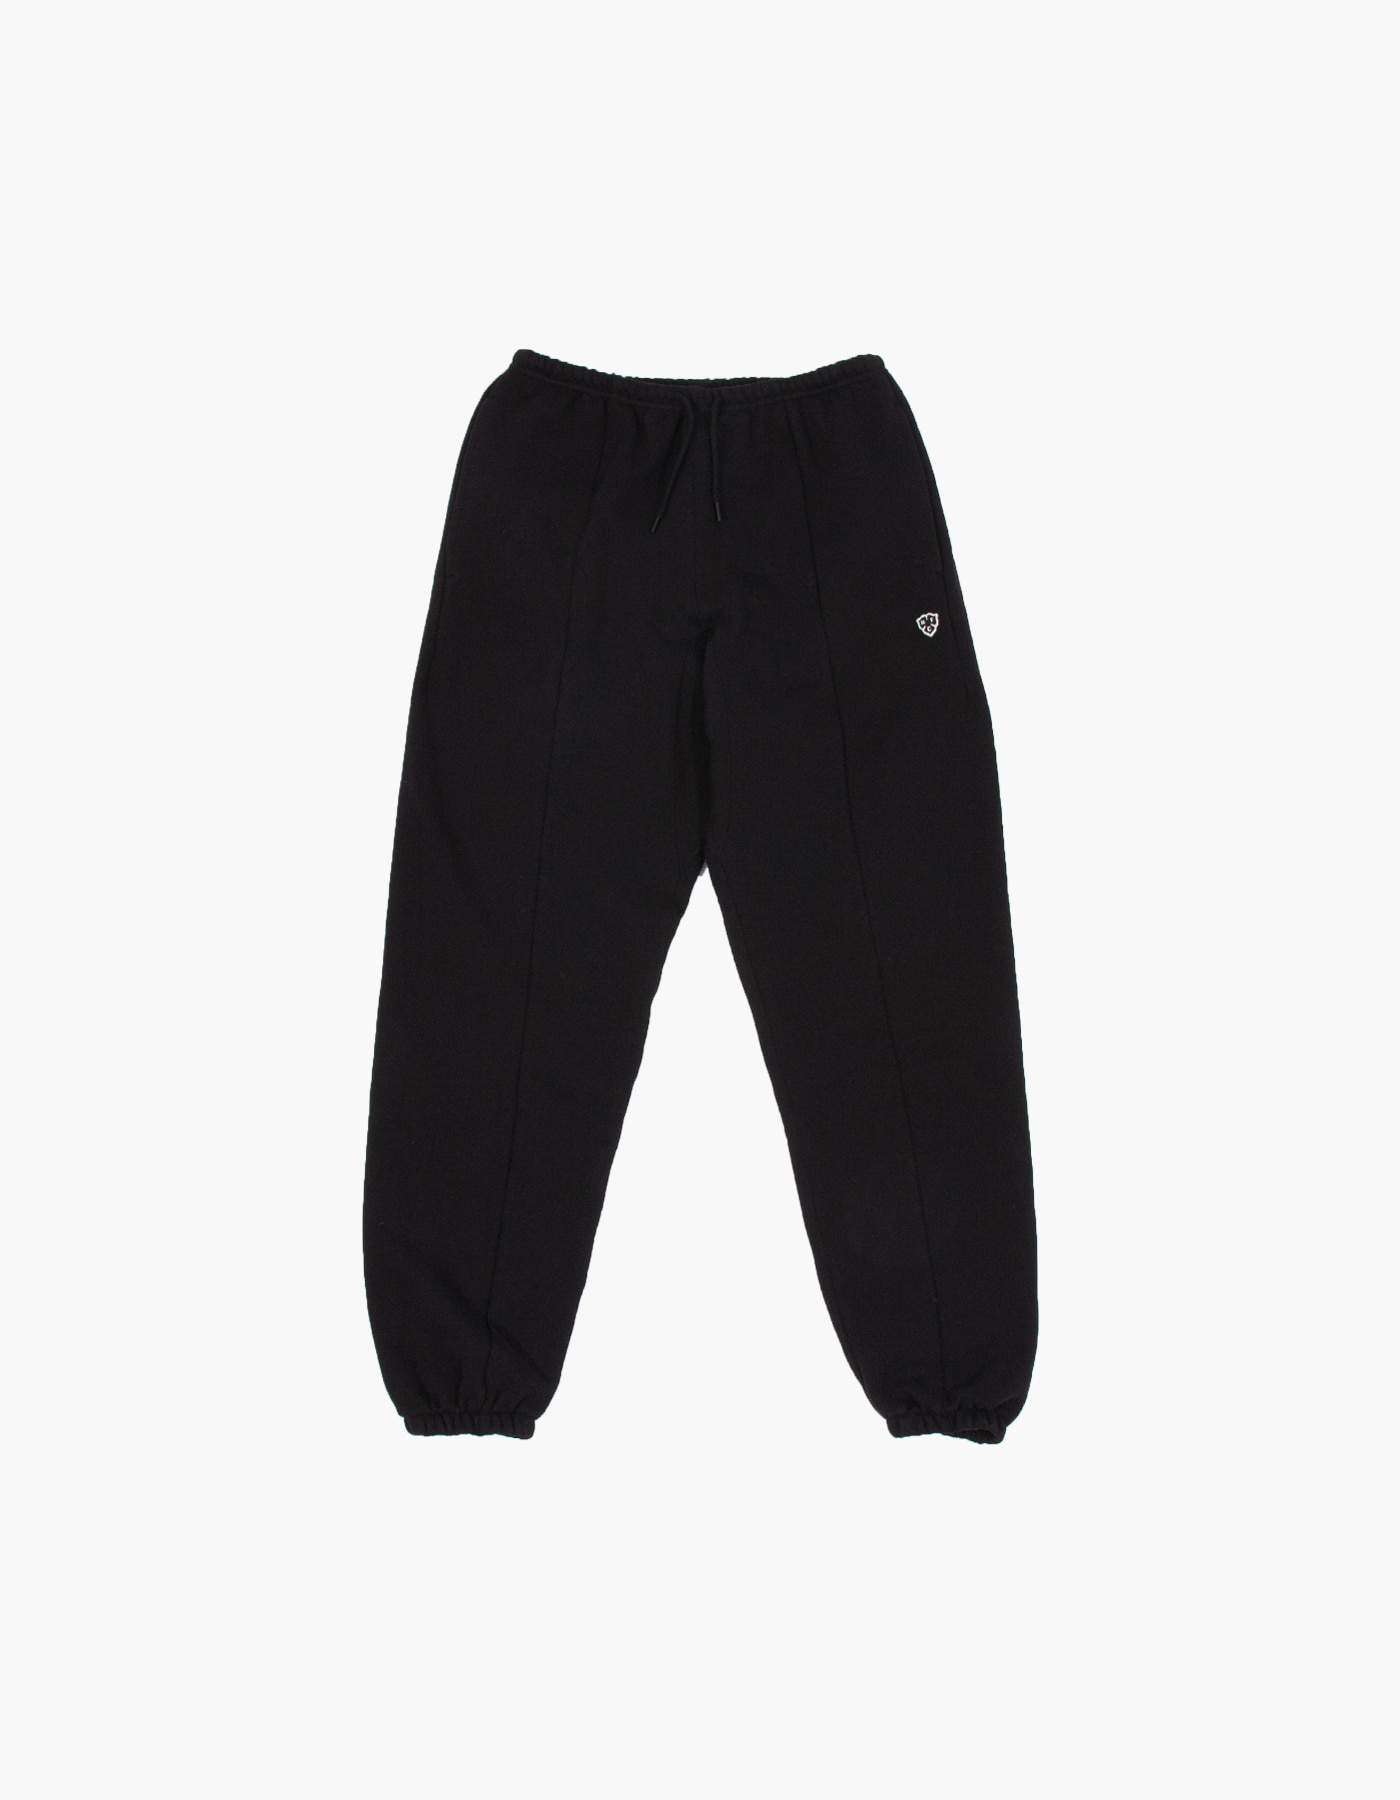 ACS SWEATPANTS / BLACK